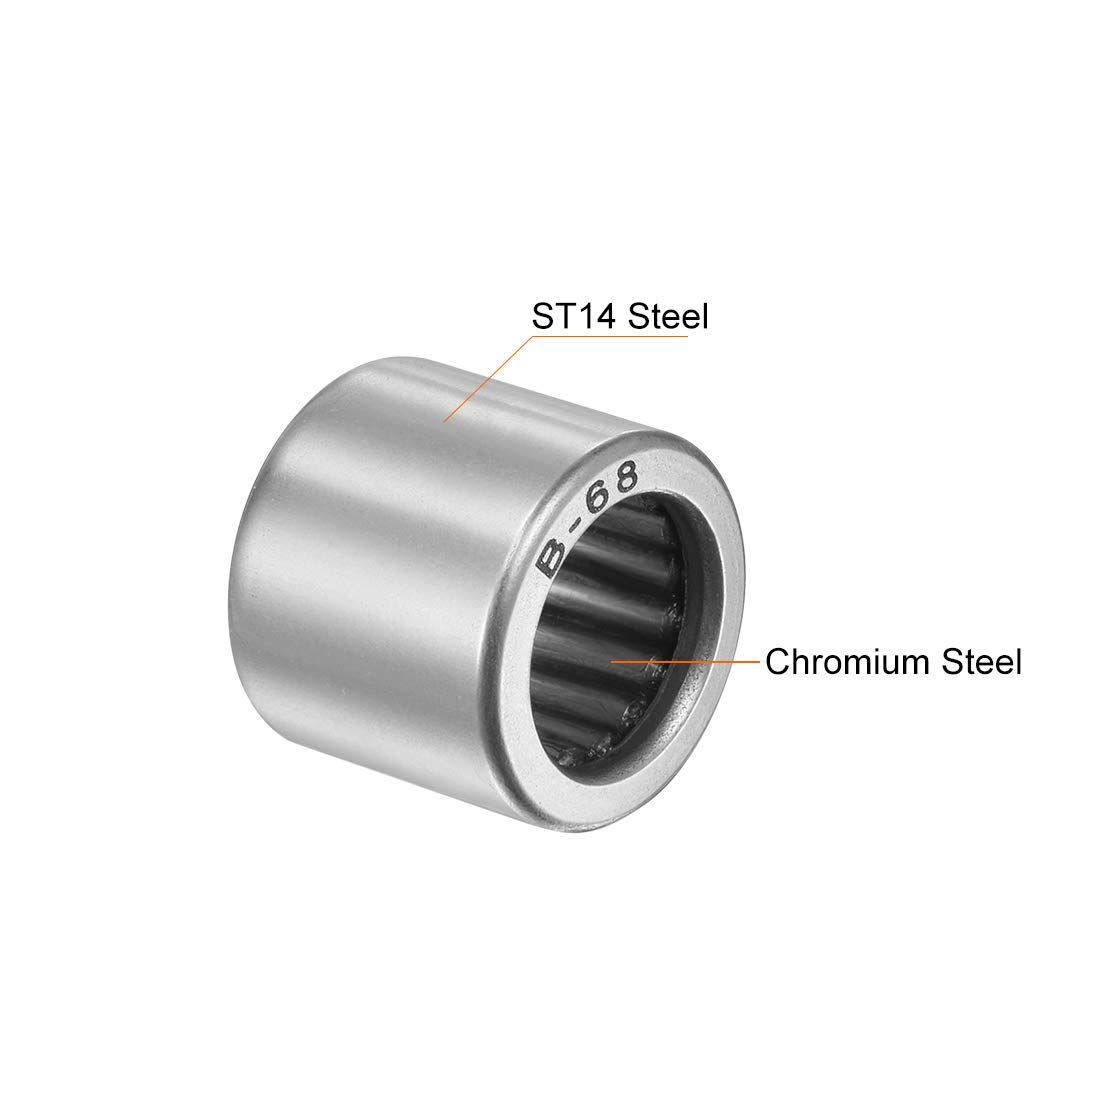 uxcell B68 Needle Roller Bearings Open 3//8-inch I.D Full Complement Drawn Cup 9//16-inch OD 1//2-inch Width 2590N Static Load 1810N Dynamic Load 7100Rpm Limiting Speed